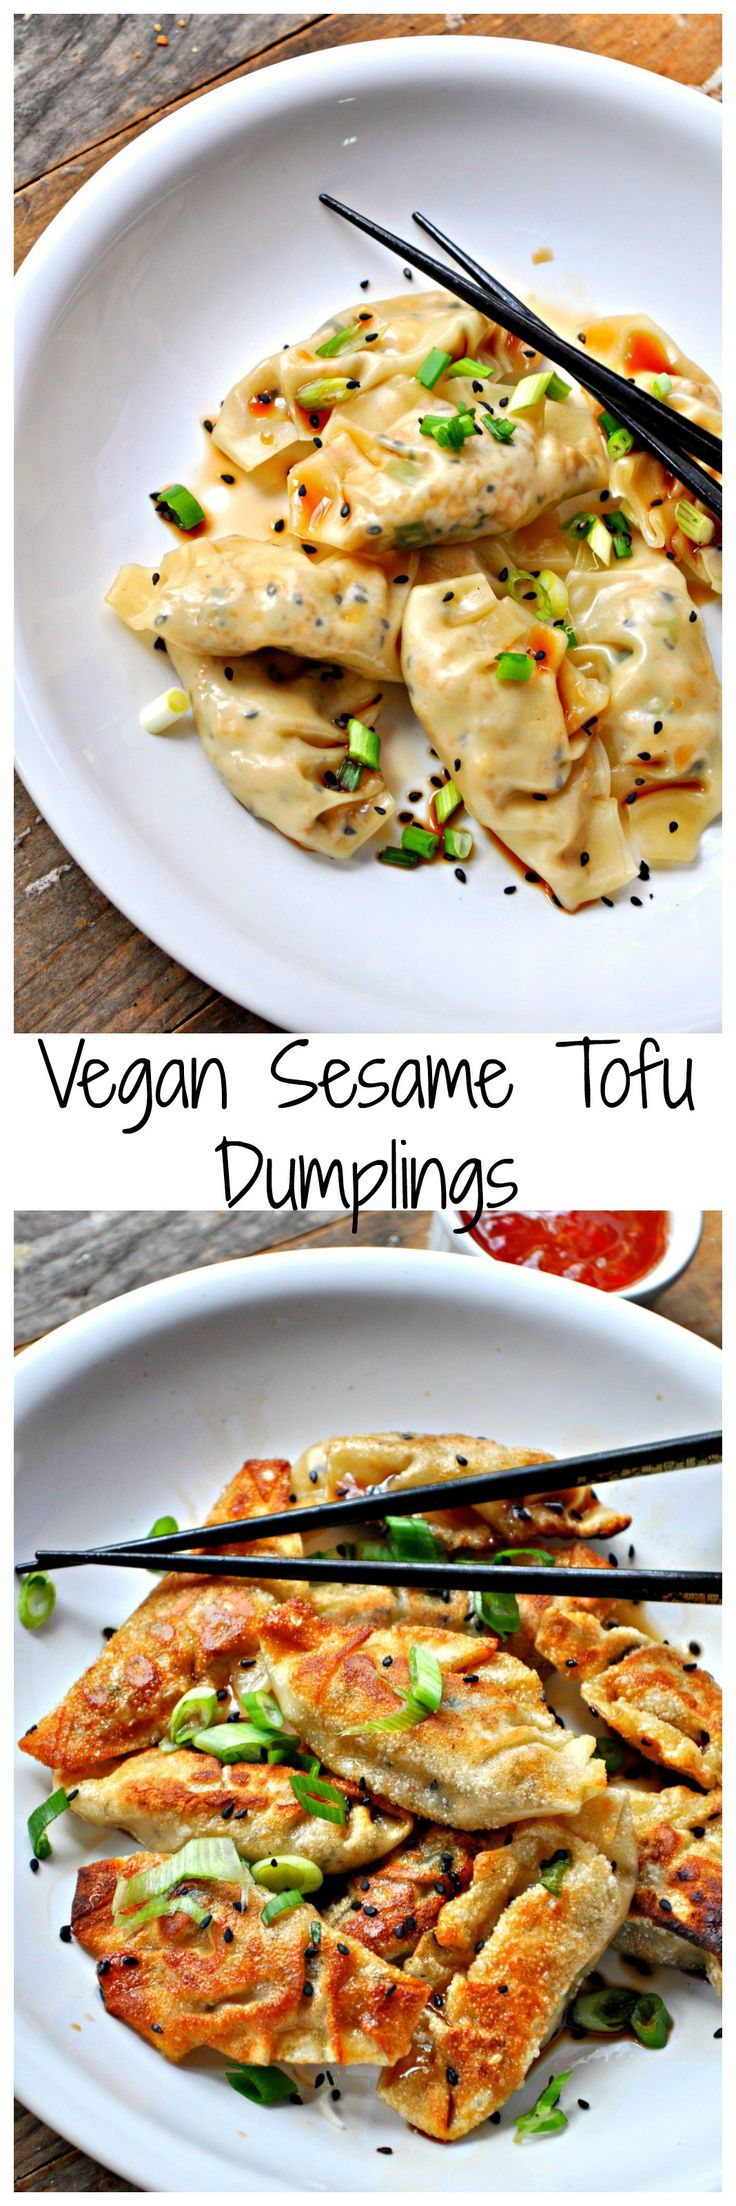 Super simple vegan dumplings filled with sesame tofu and green onions. Steamed or pan fried, either way, they are amazing!